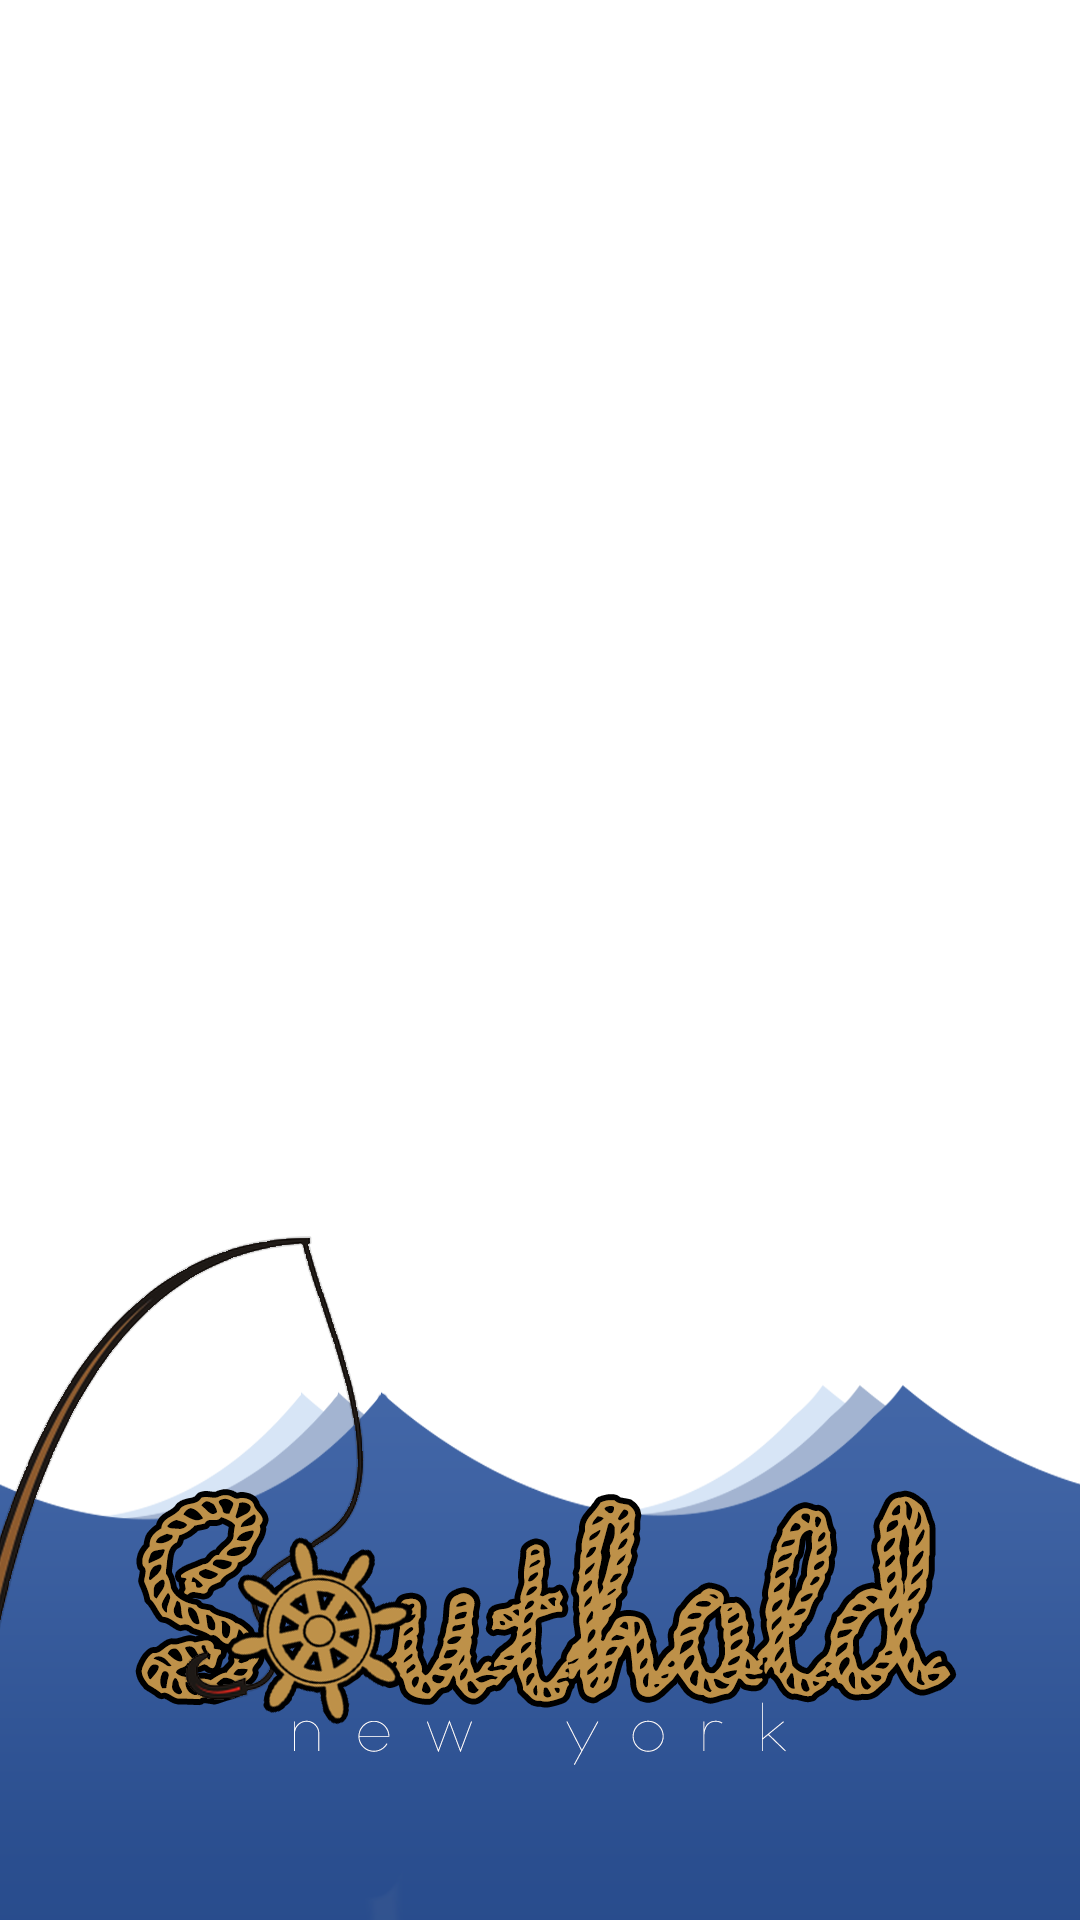 Los angeles geofilter clipart jpg library Southold Town Snapchat Geo-Filter on Behance #Snapchat #Geo ... jpg library